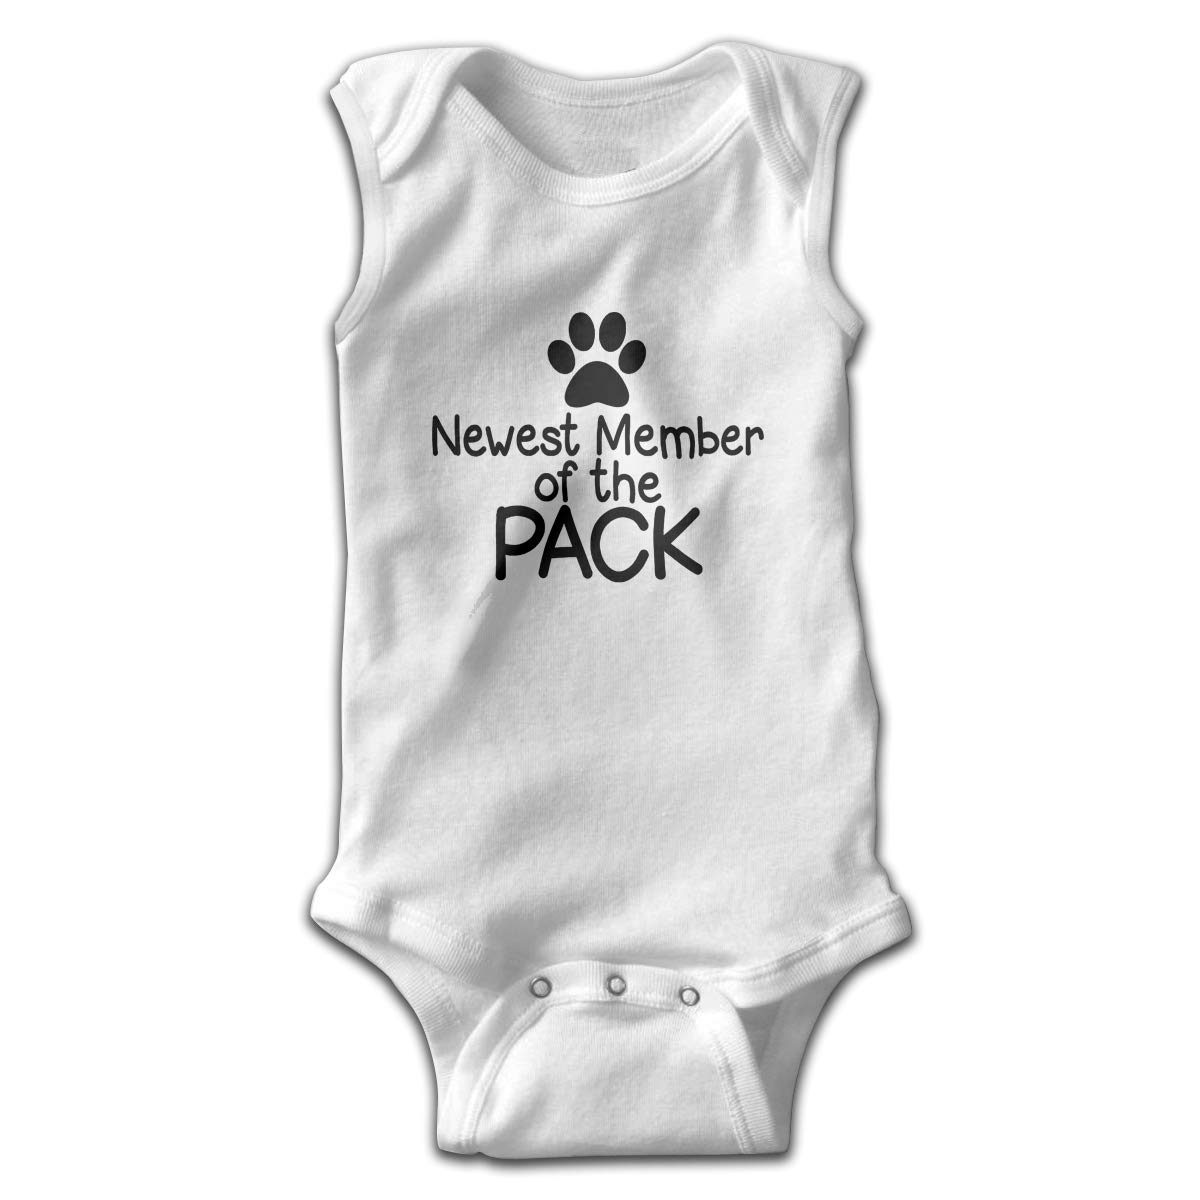 Newest Member Pack Toddler Baby Clothes Layette Sleeveless Summer Novelty Funny Gift for Baby